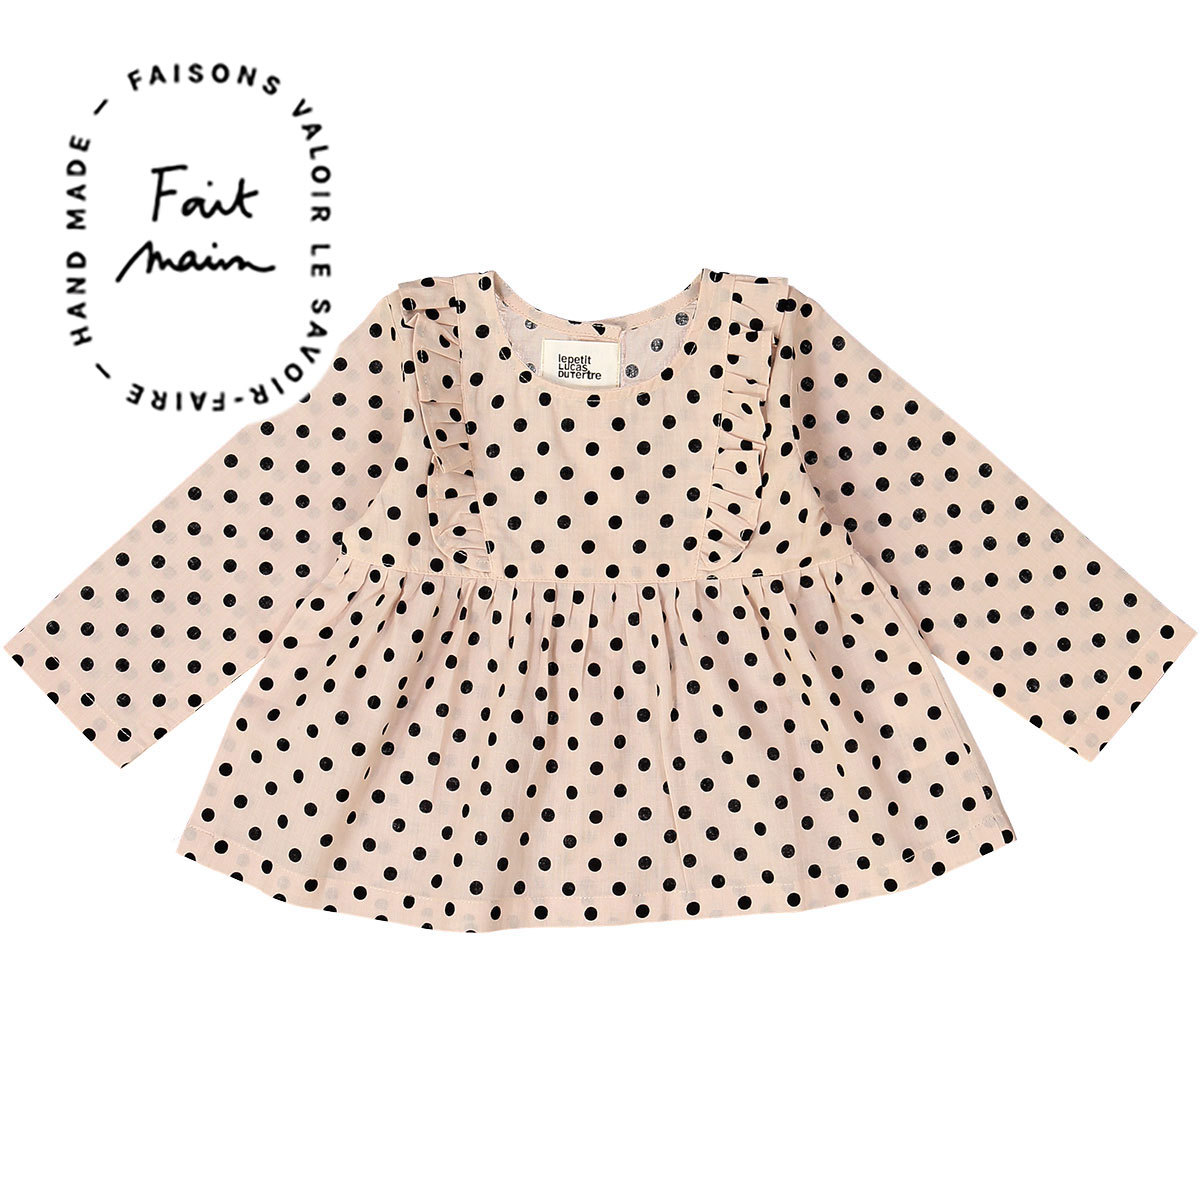 Hauts bébé Blouse Joe - Black Dots - 2 Ans Blouse Joe - Black Dots - 2 Ans